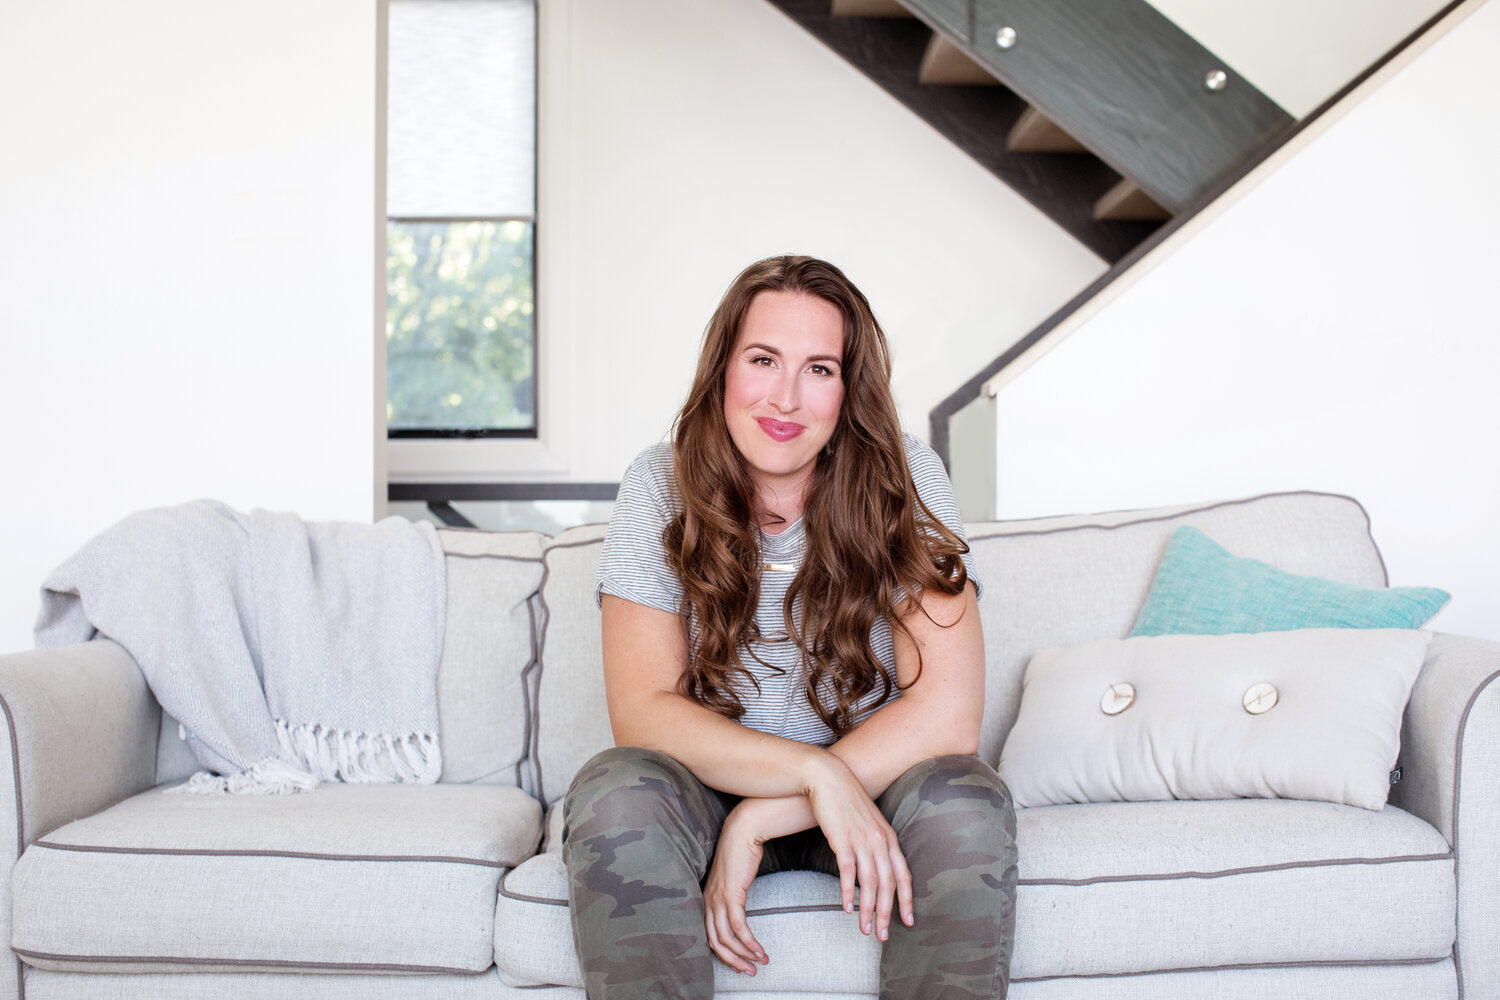 Rachel Molenda on Intuitive Eating and the Sober Curious Lifestyle